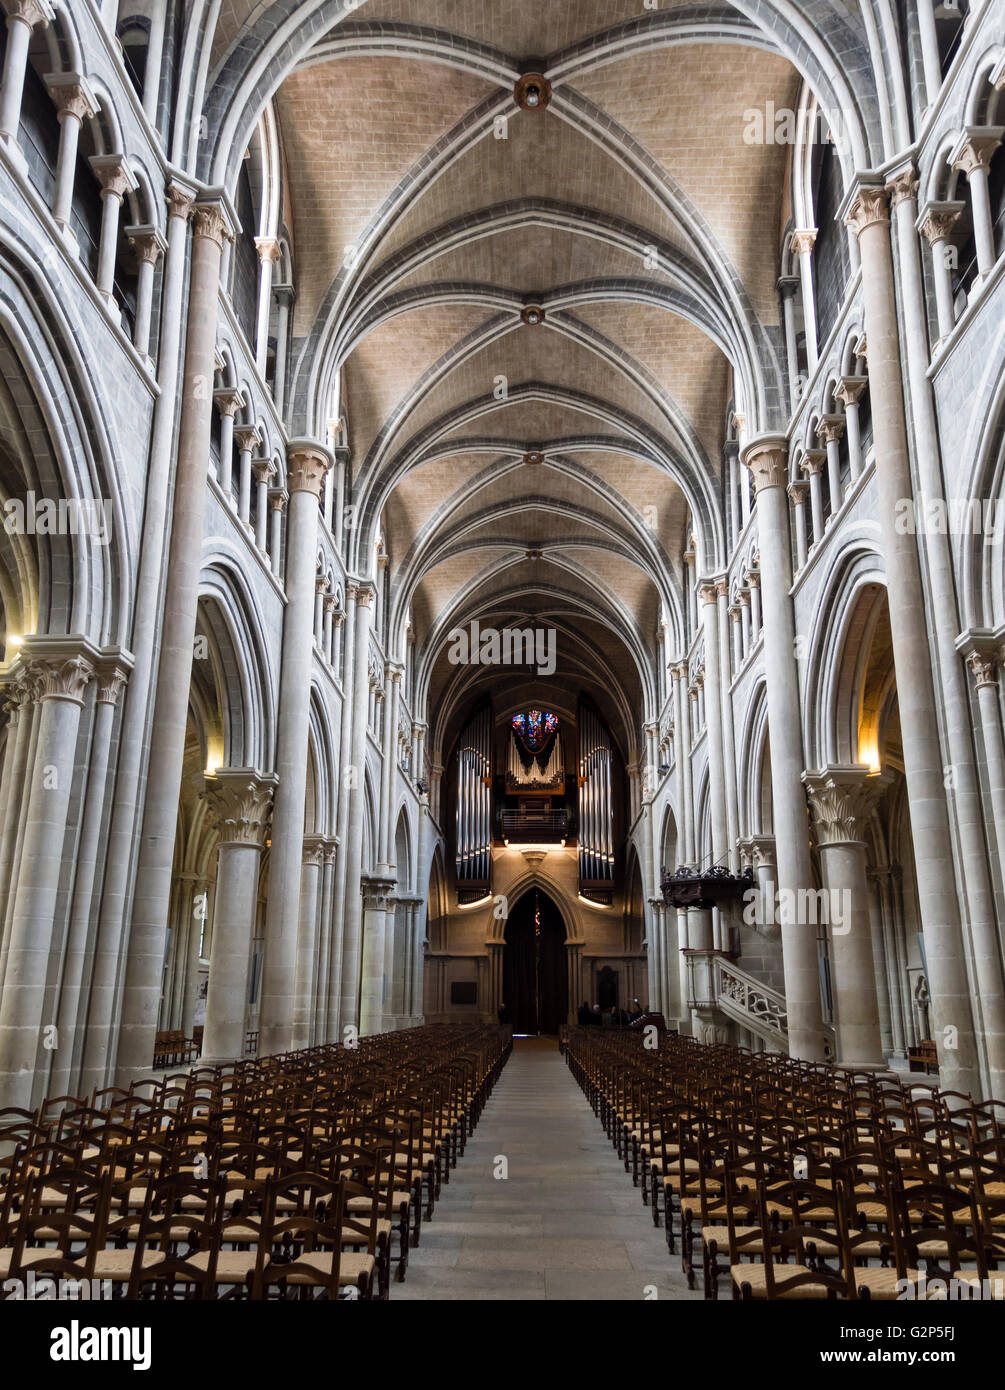 Gothic Style Interior interior view of the 12th century gothic style cathedral of notre